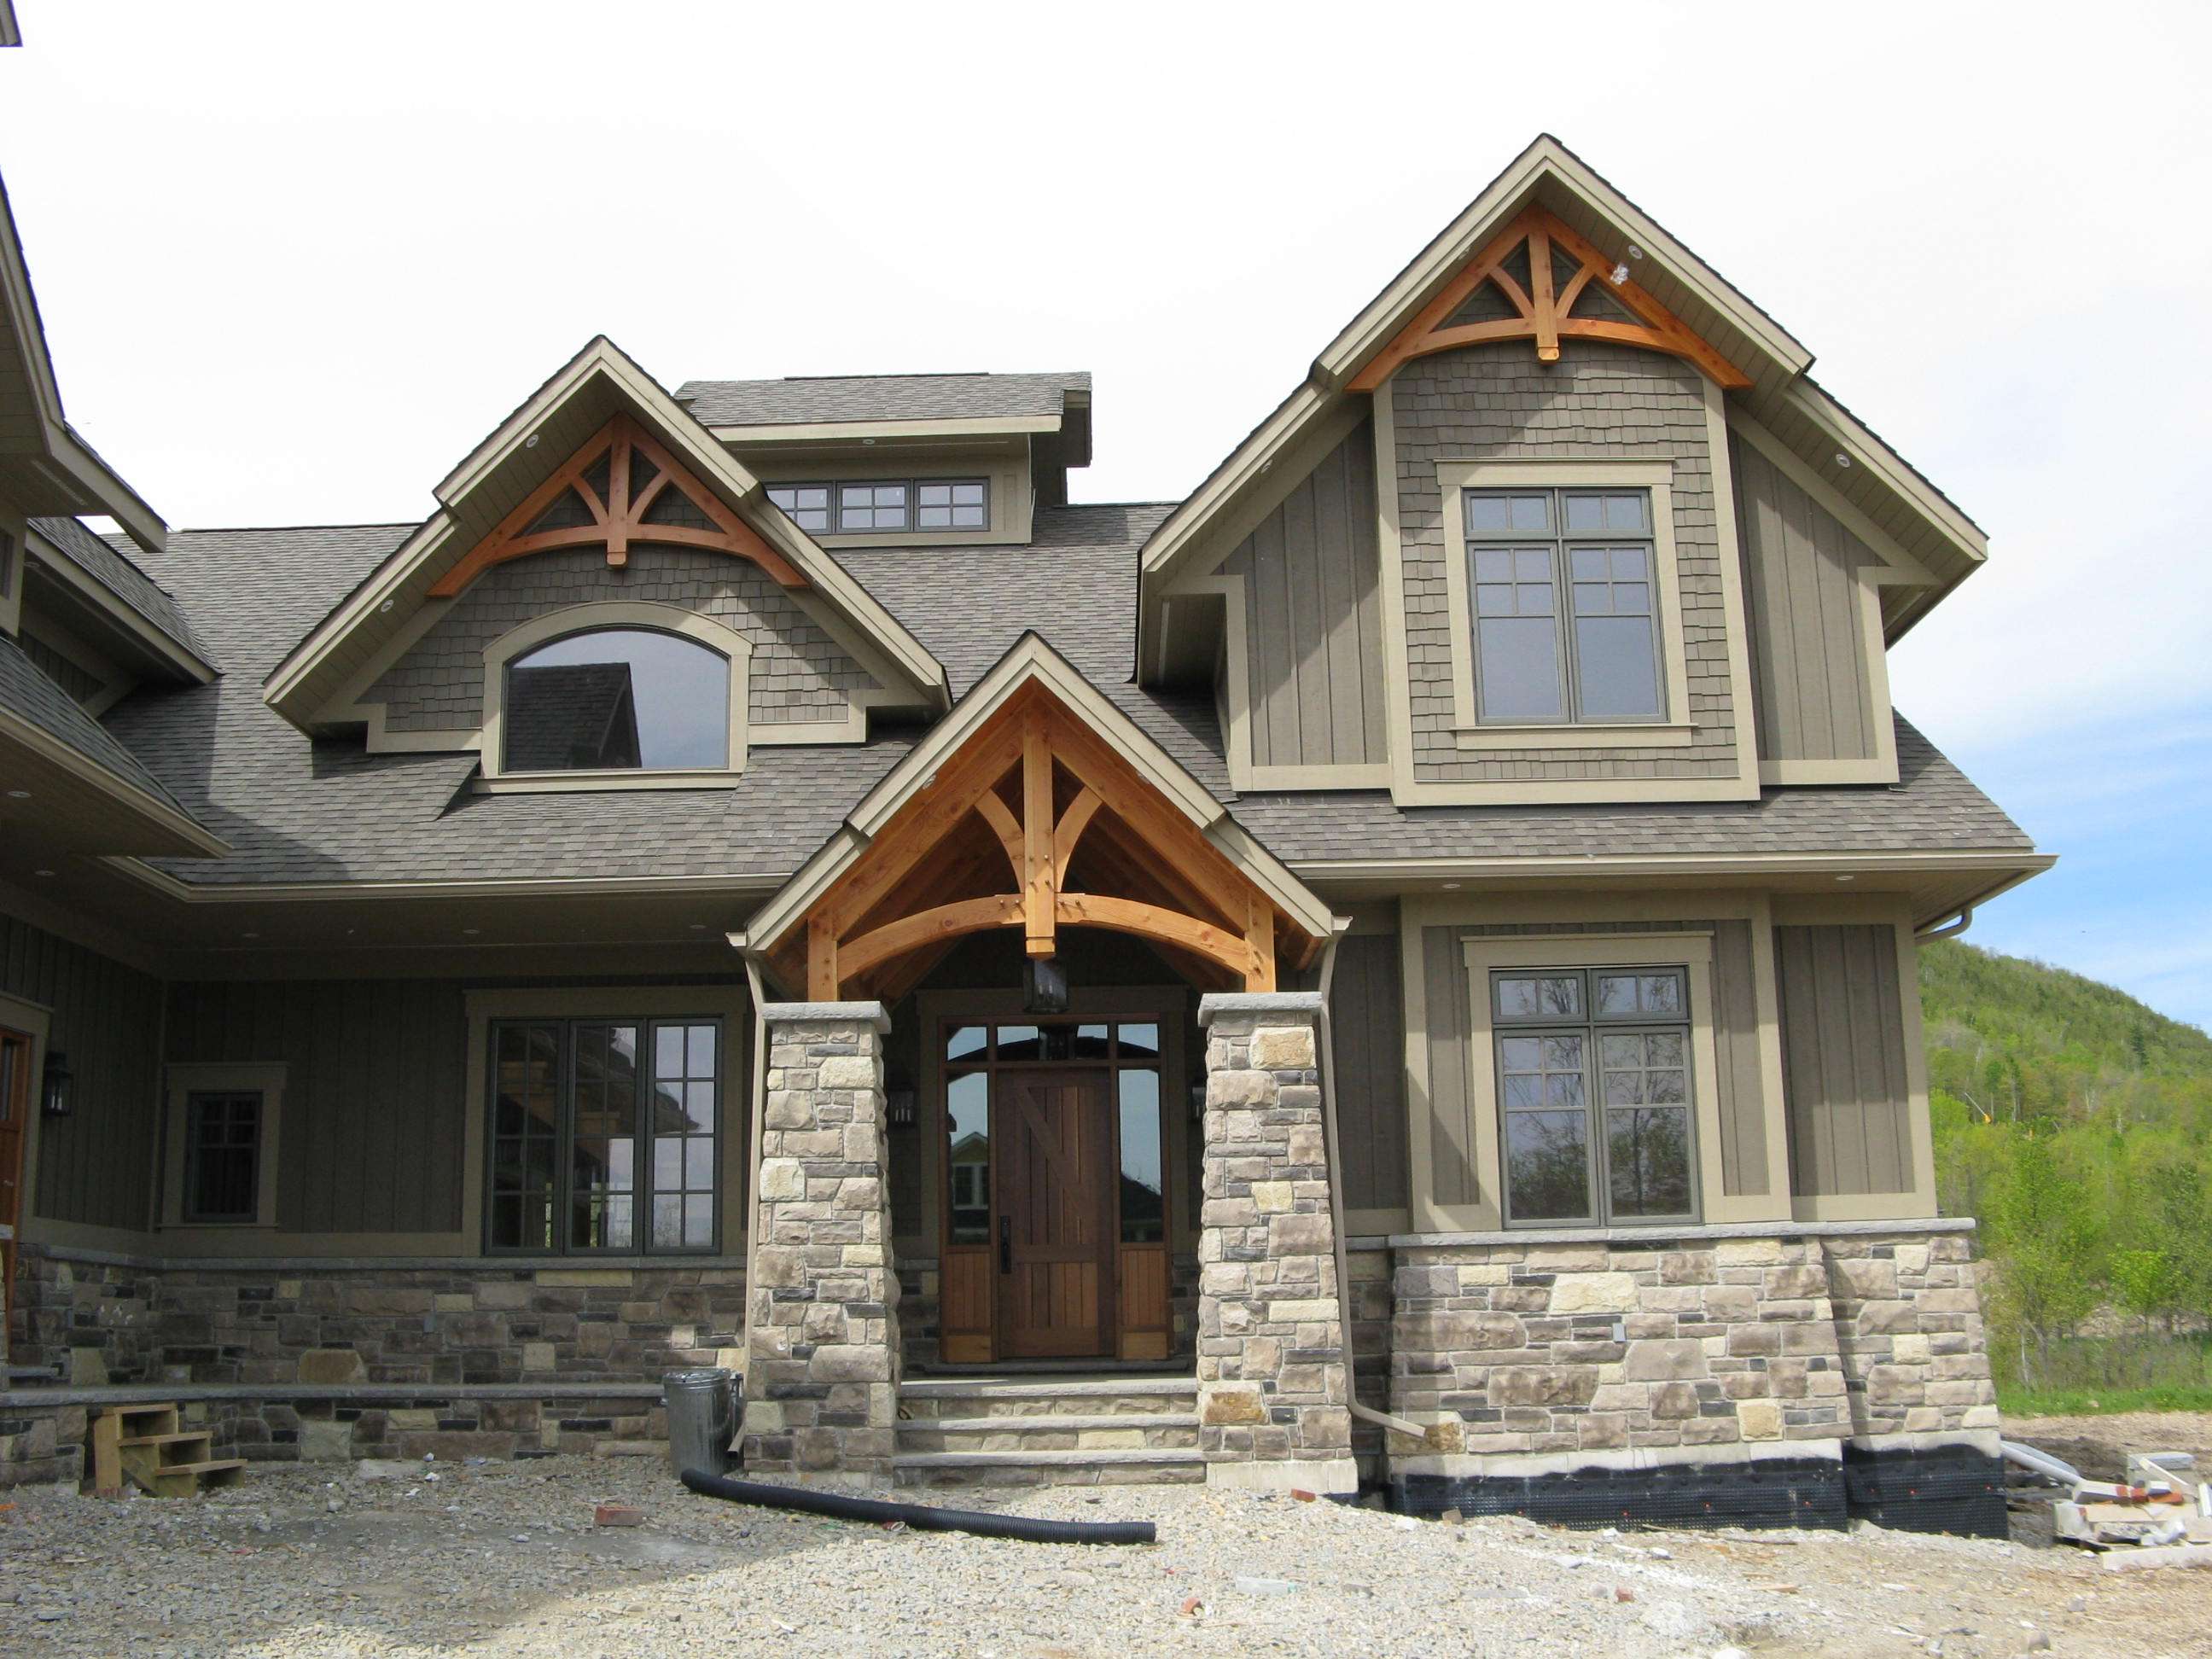 Curved Gable Details